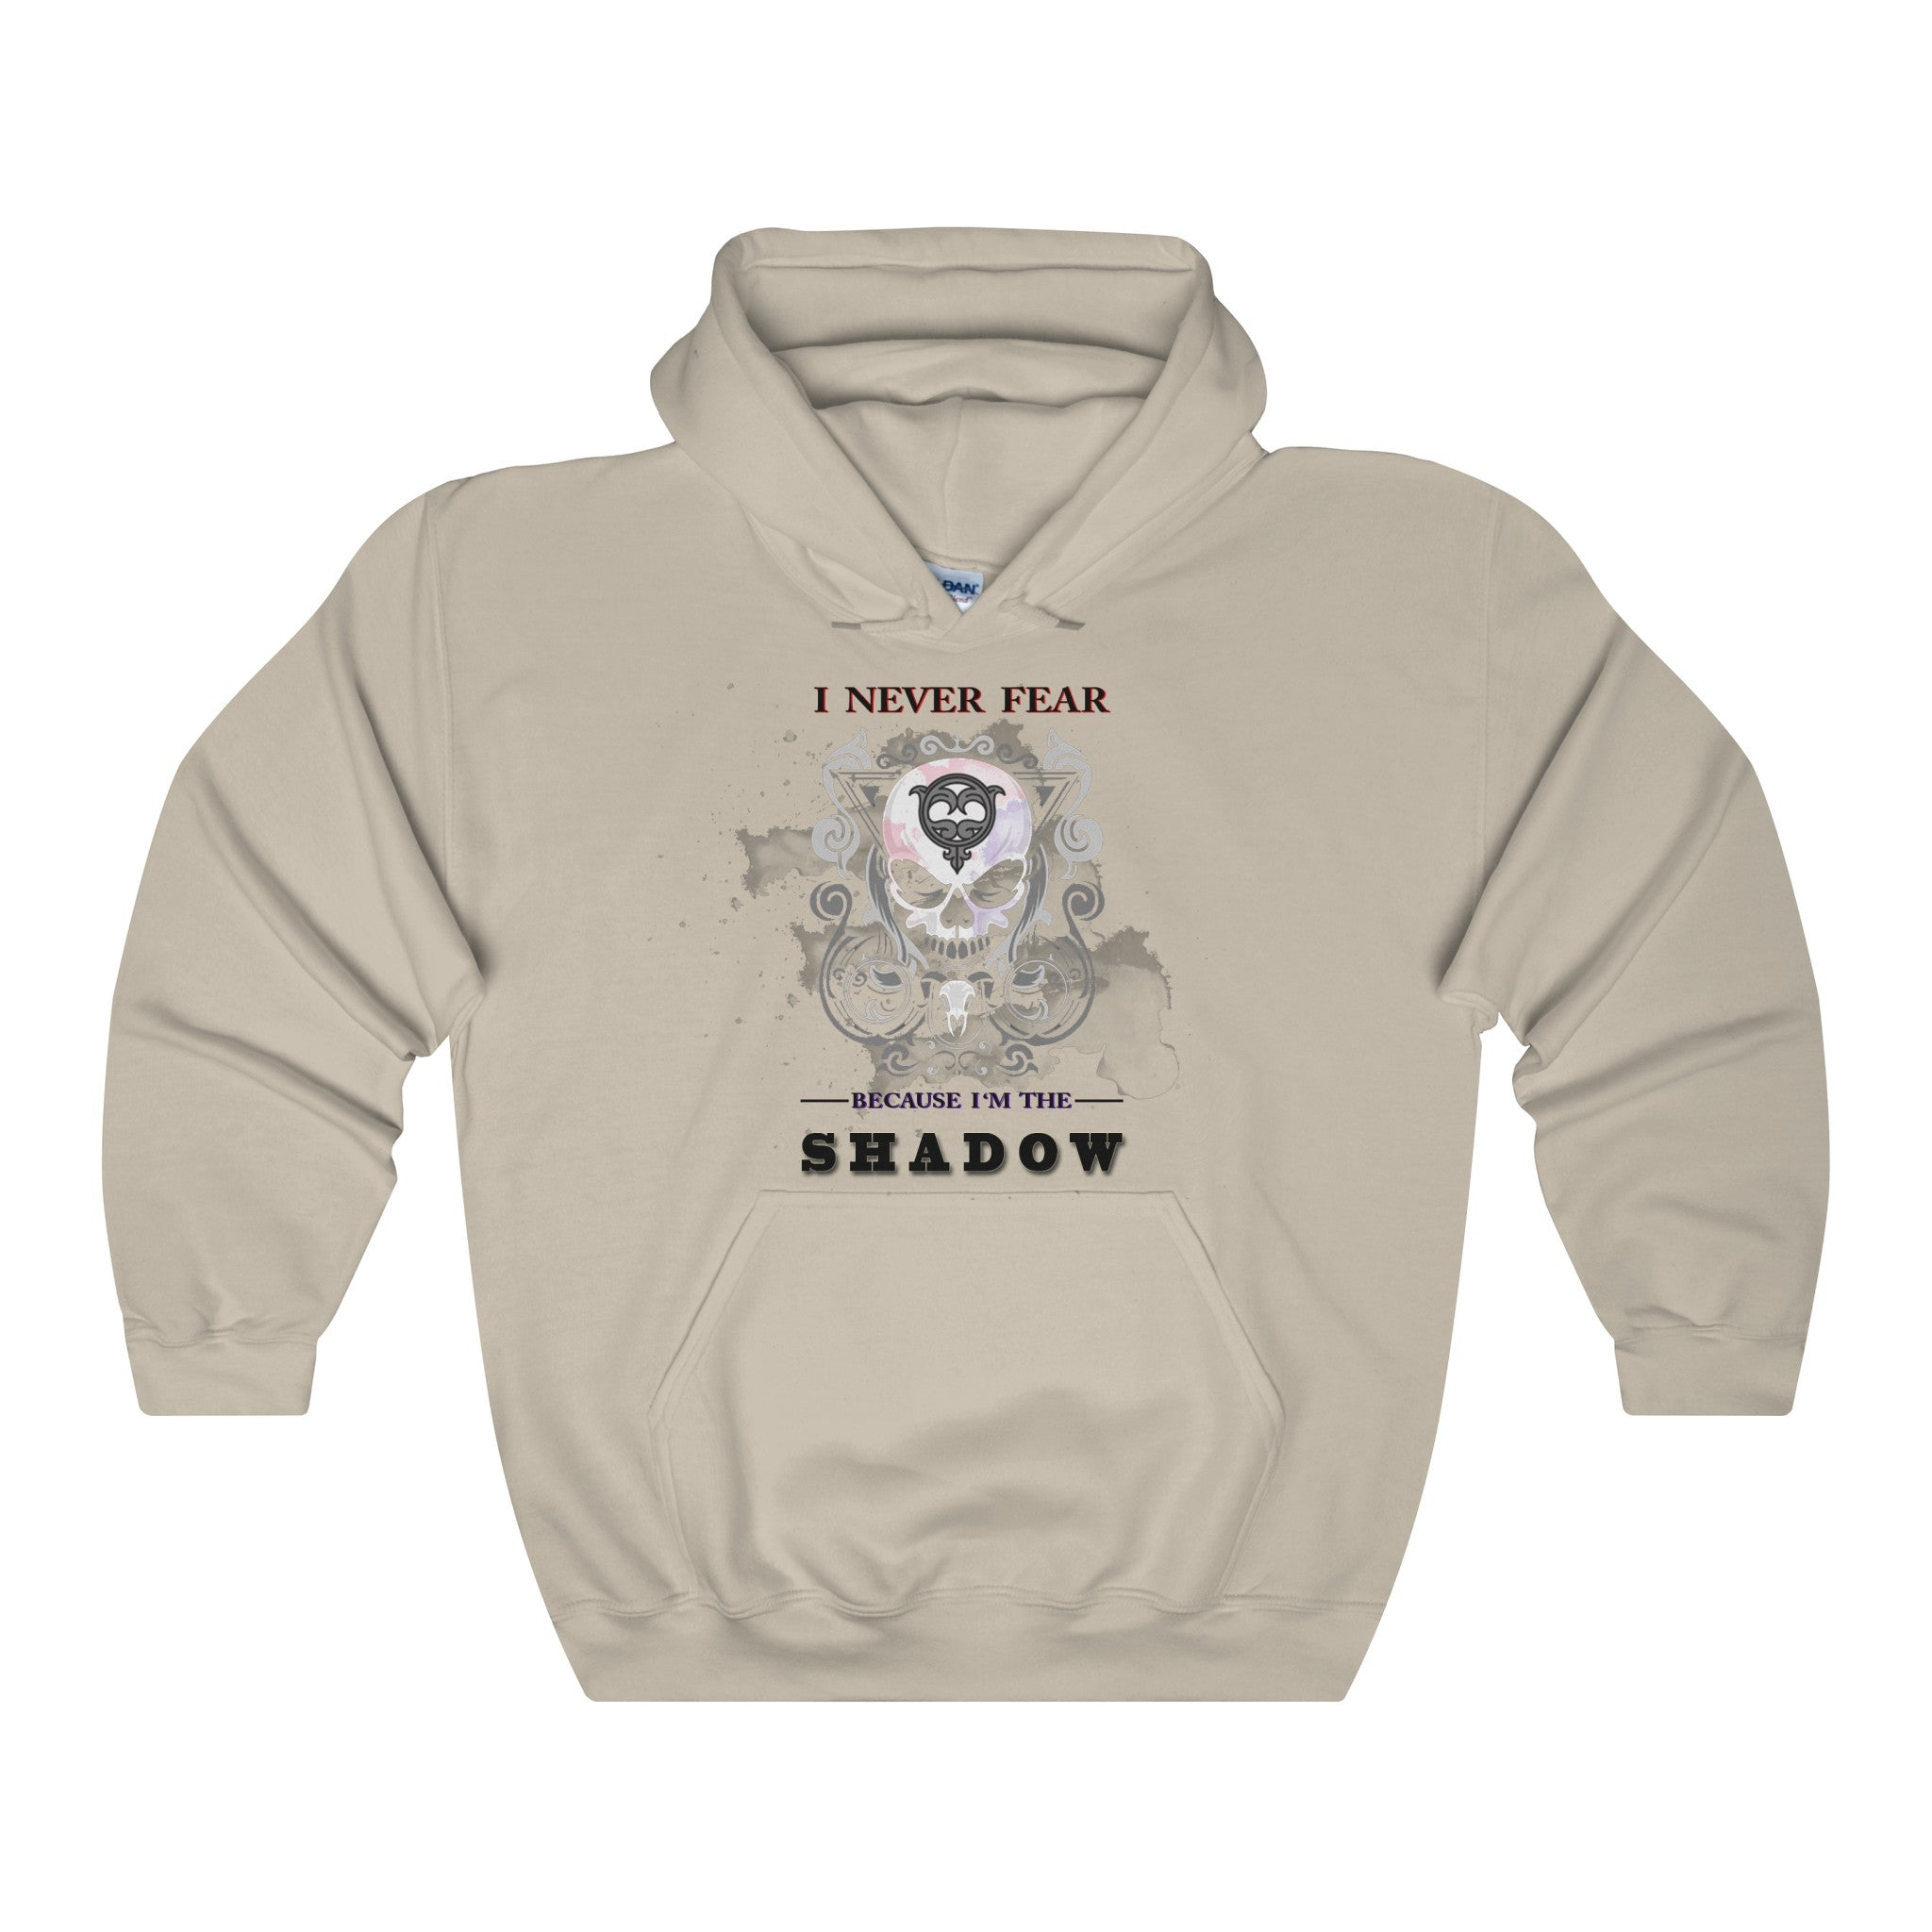 The Shadow- Heavy Blend Hooded Sweatshirt- STAY WARM THIS WINTER - ON SALE NOW  GET YOURS